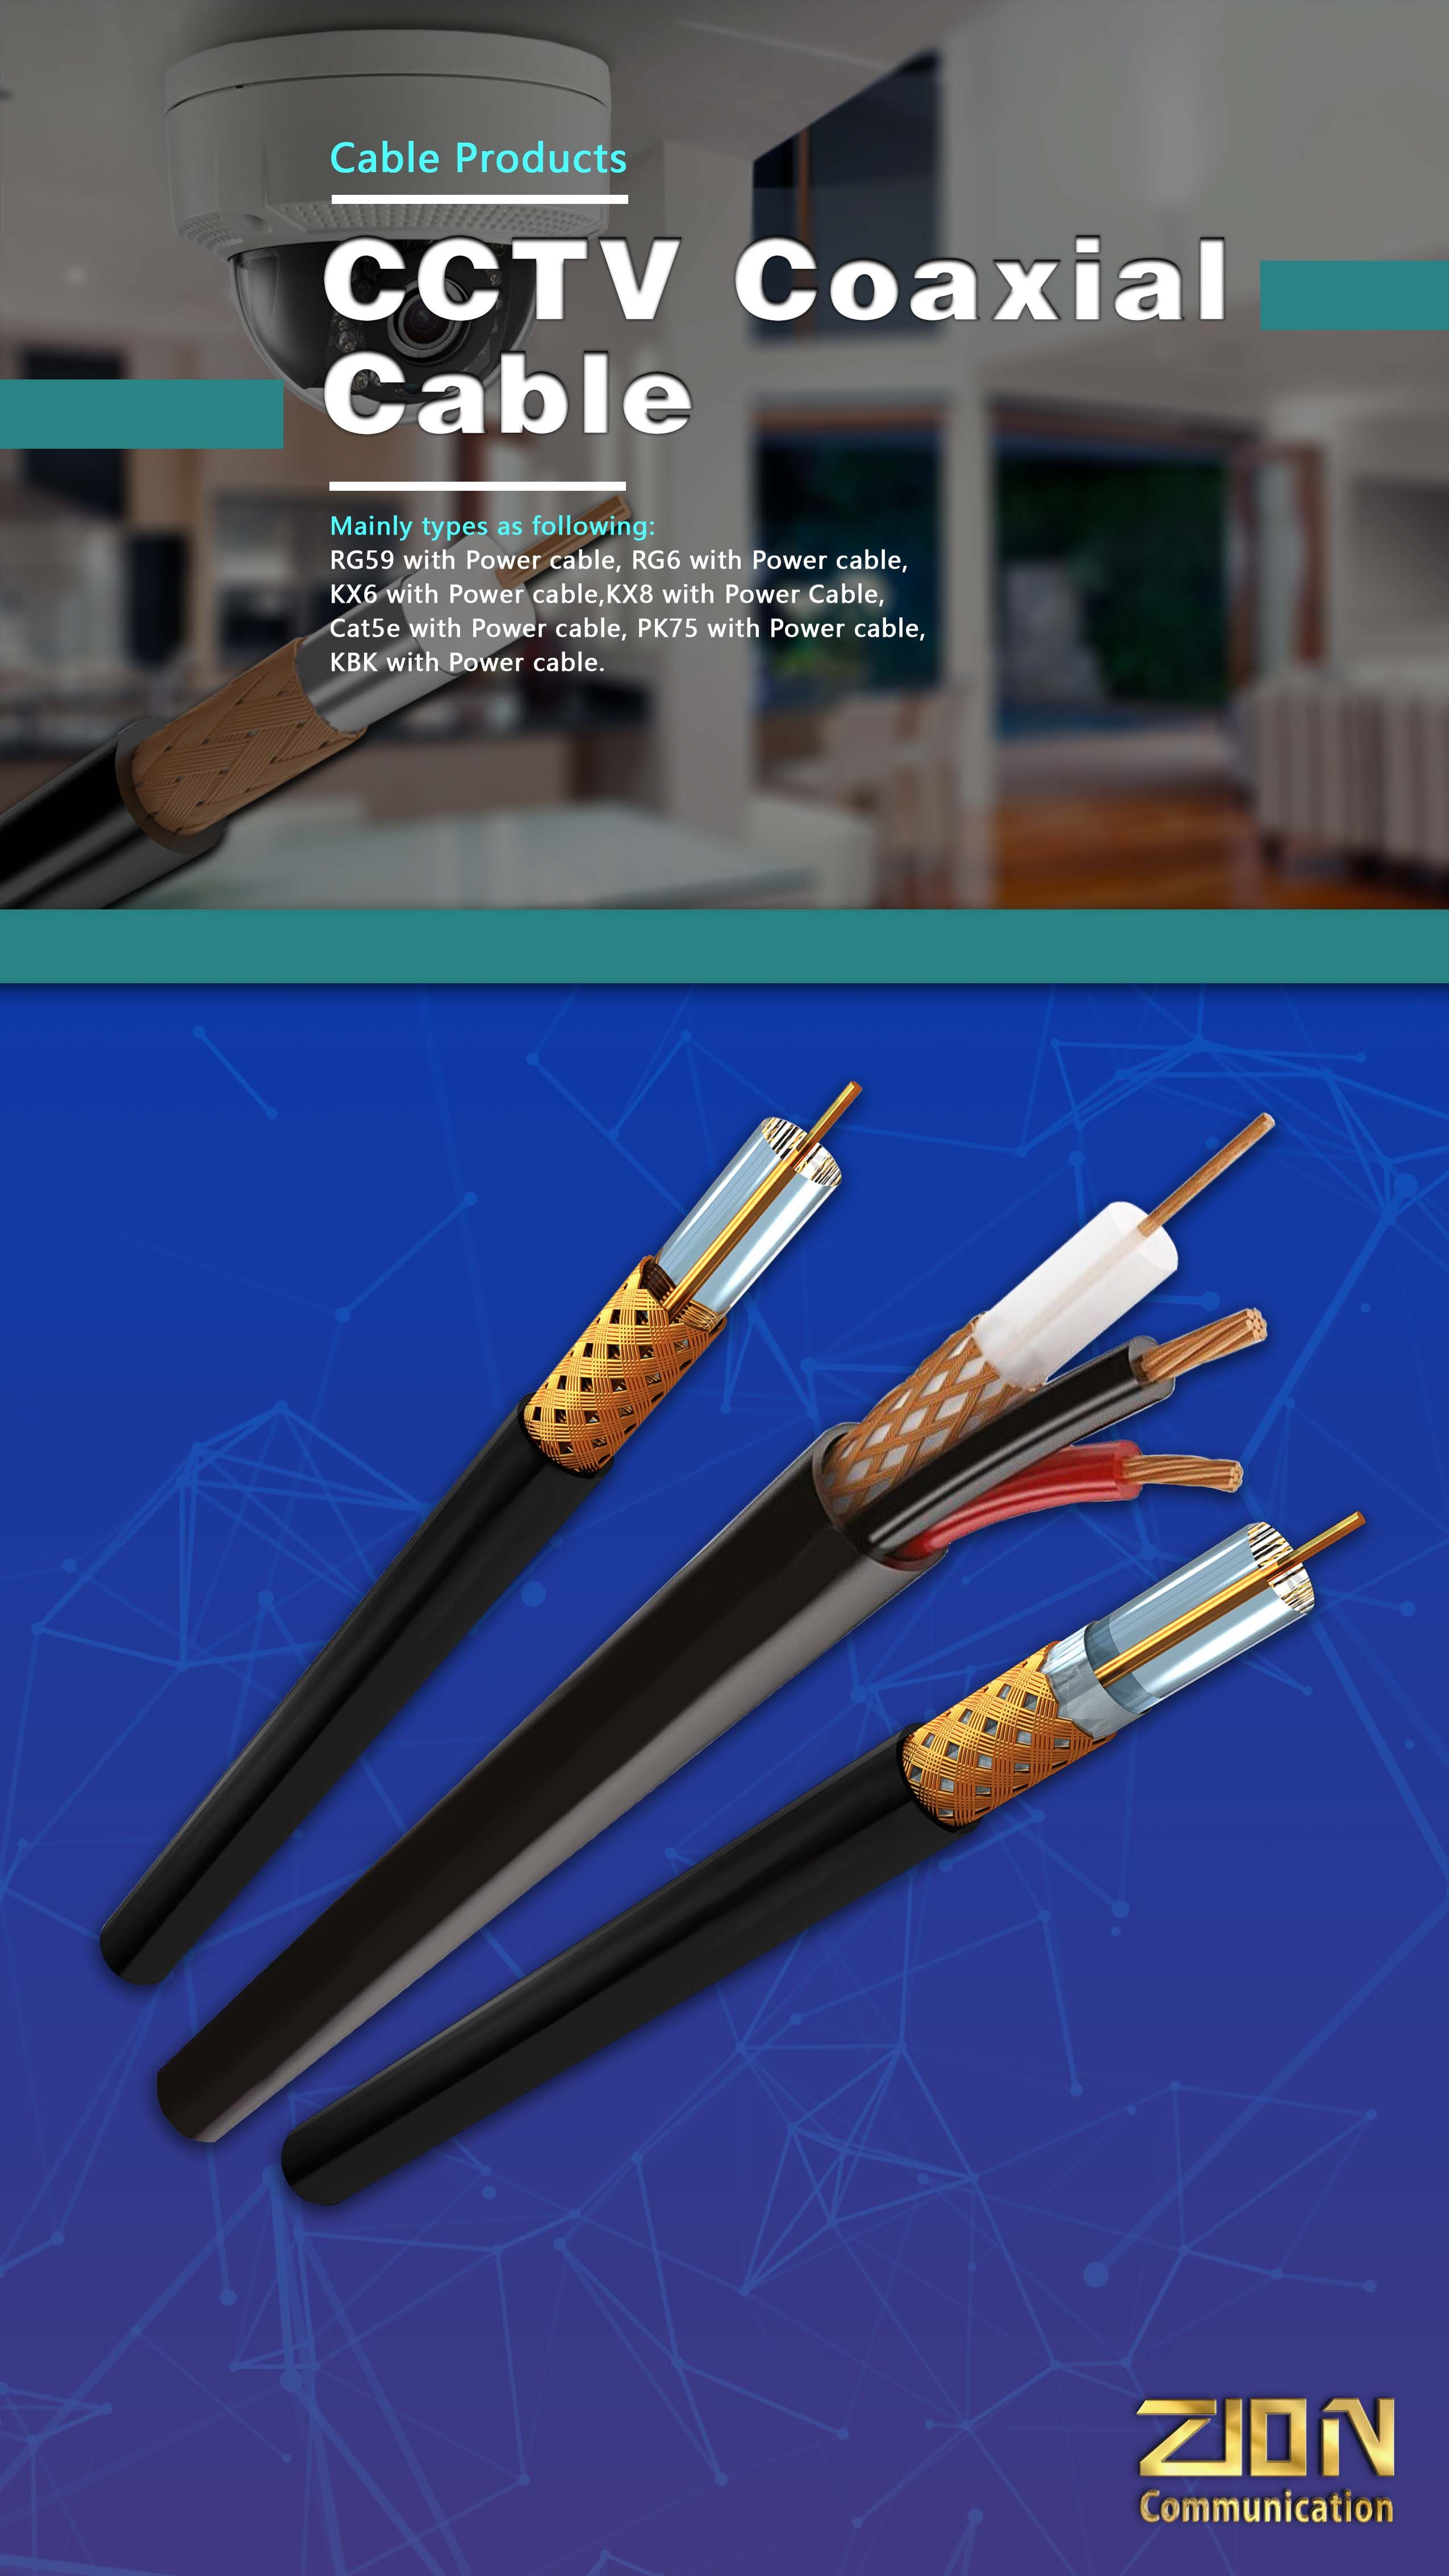 Cctv Coaxial Cable Communication Networking Cables Cable